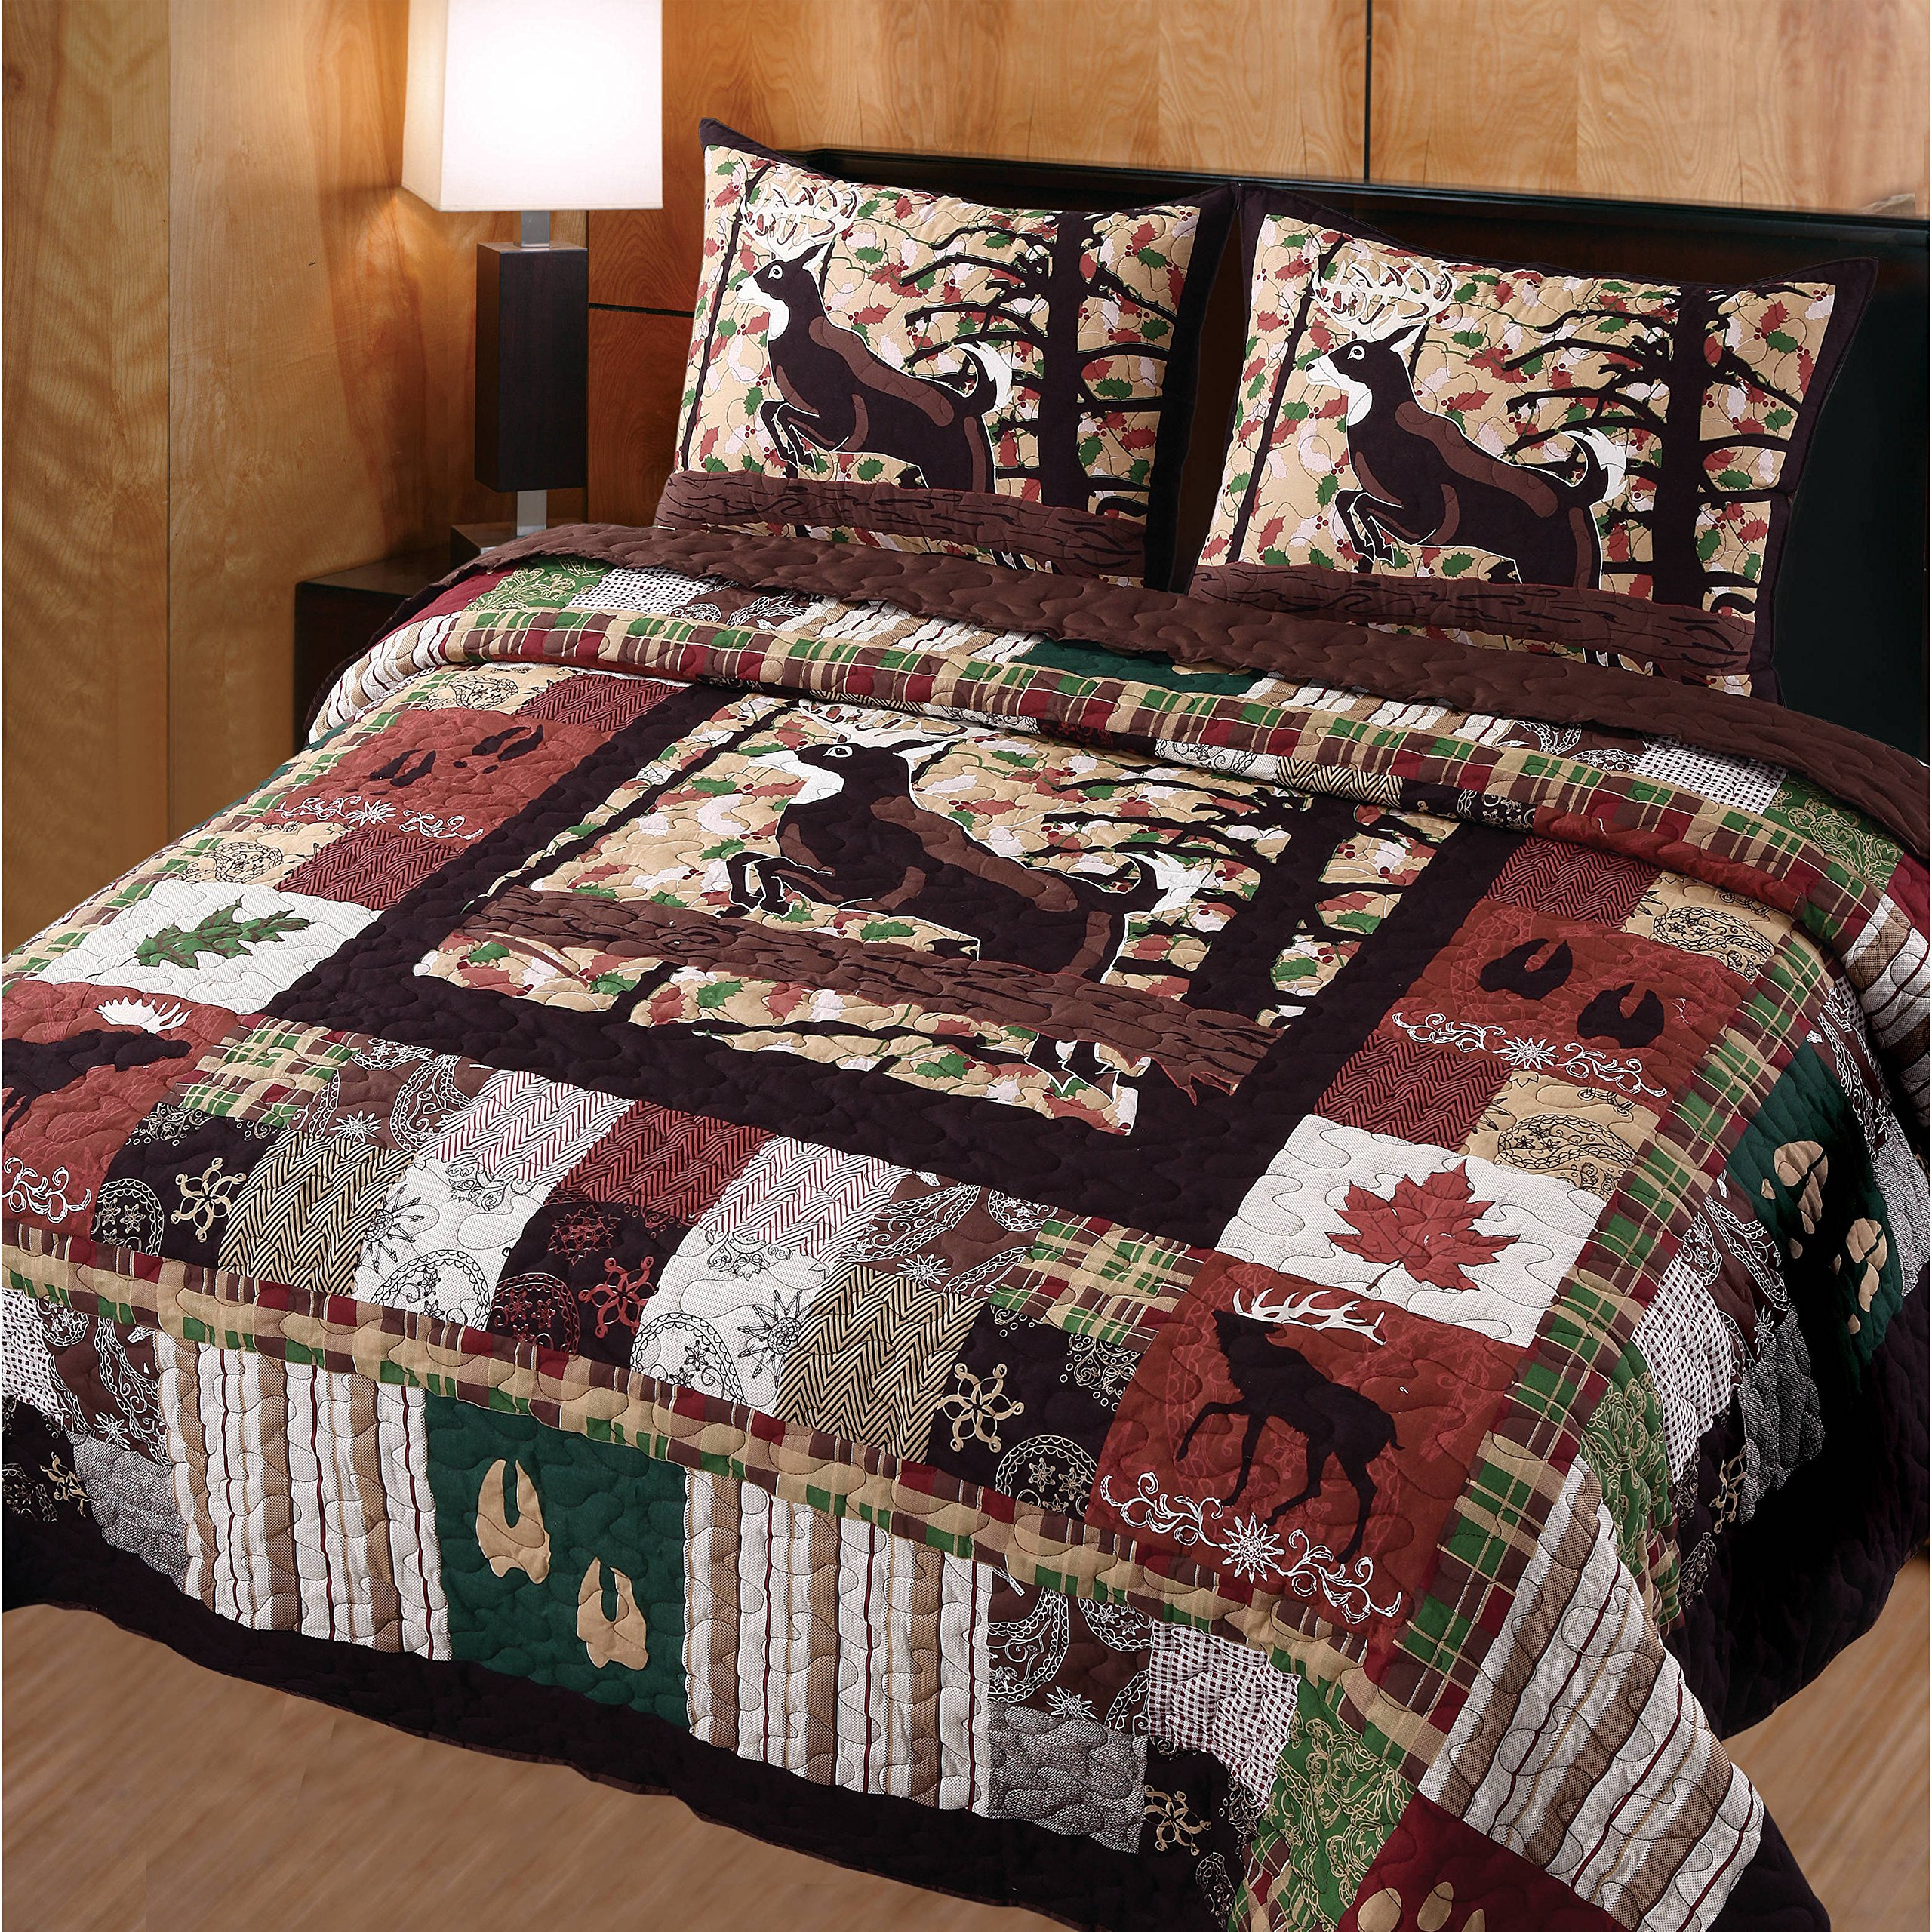 D&A 3 Piece Brown Red Plaid King Quilt Set, Lodge Animal Print Themed Bedding, Cabin Country Sqaures Tartan Lumberjack Pattern Cottage Woods Hunting Deer Moose Horizontal Vertical Stripes, Cotton